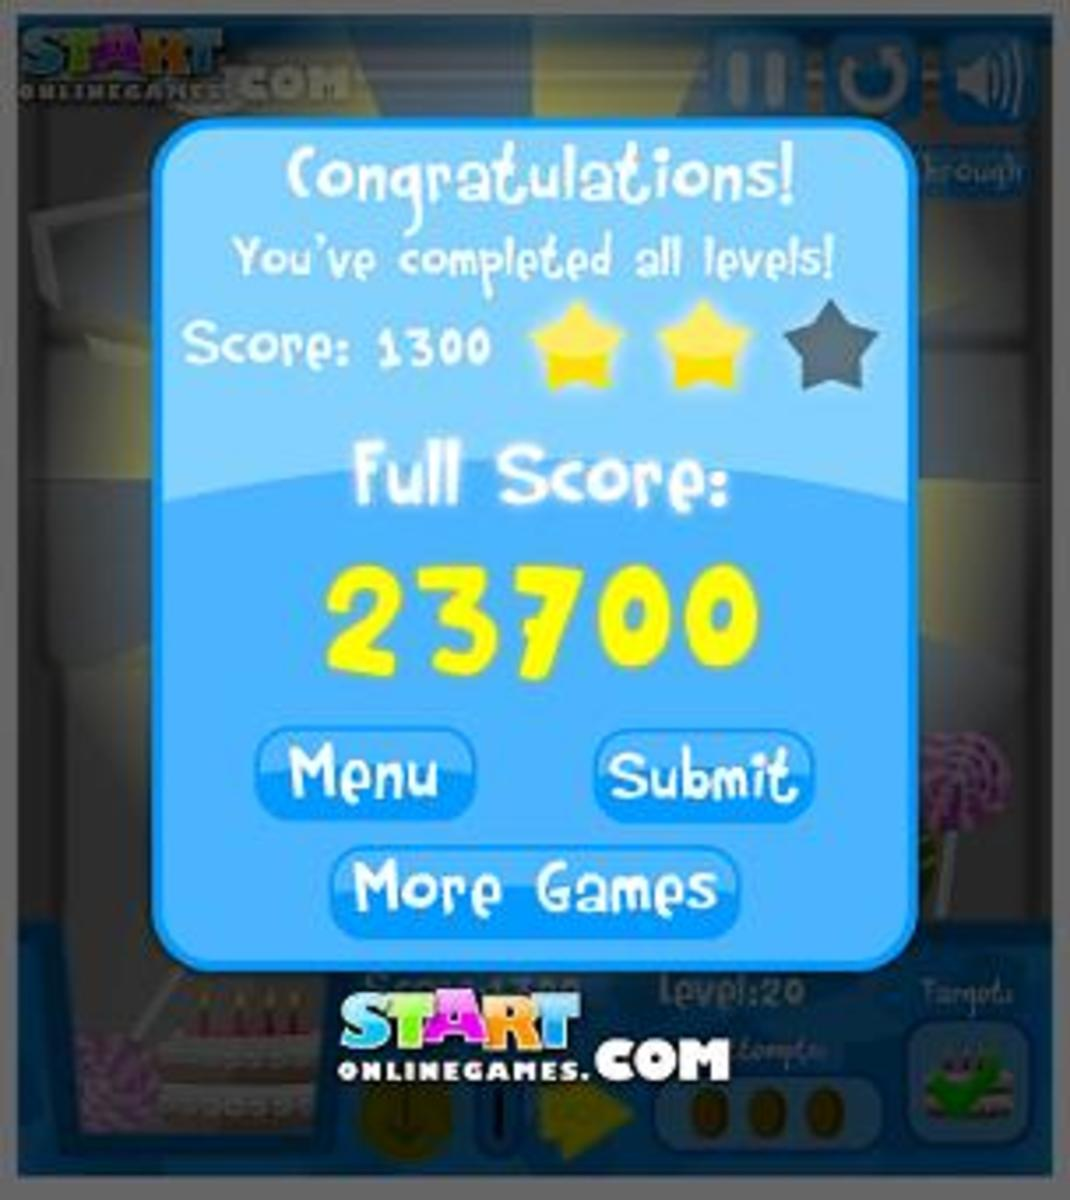 My final score from March 2012